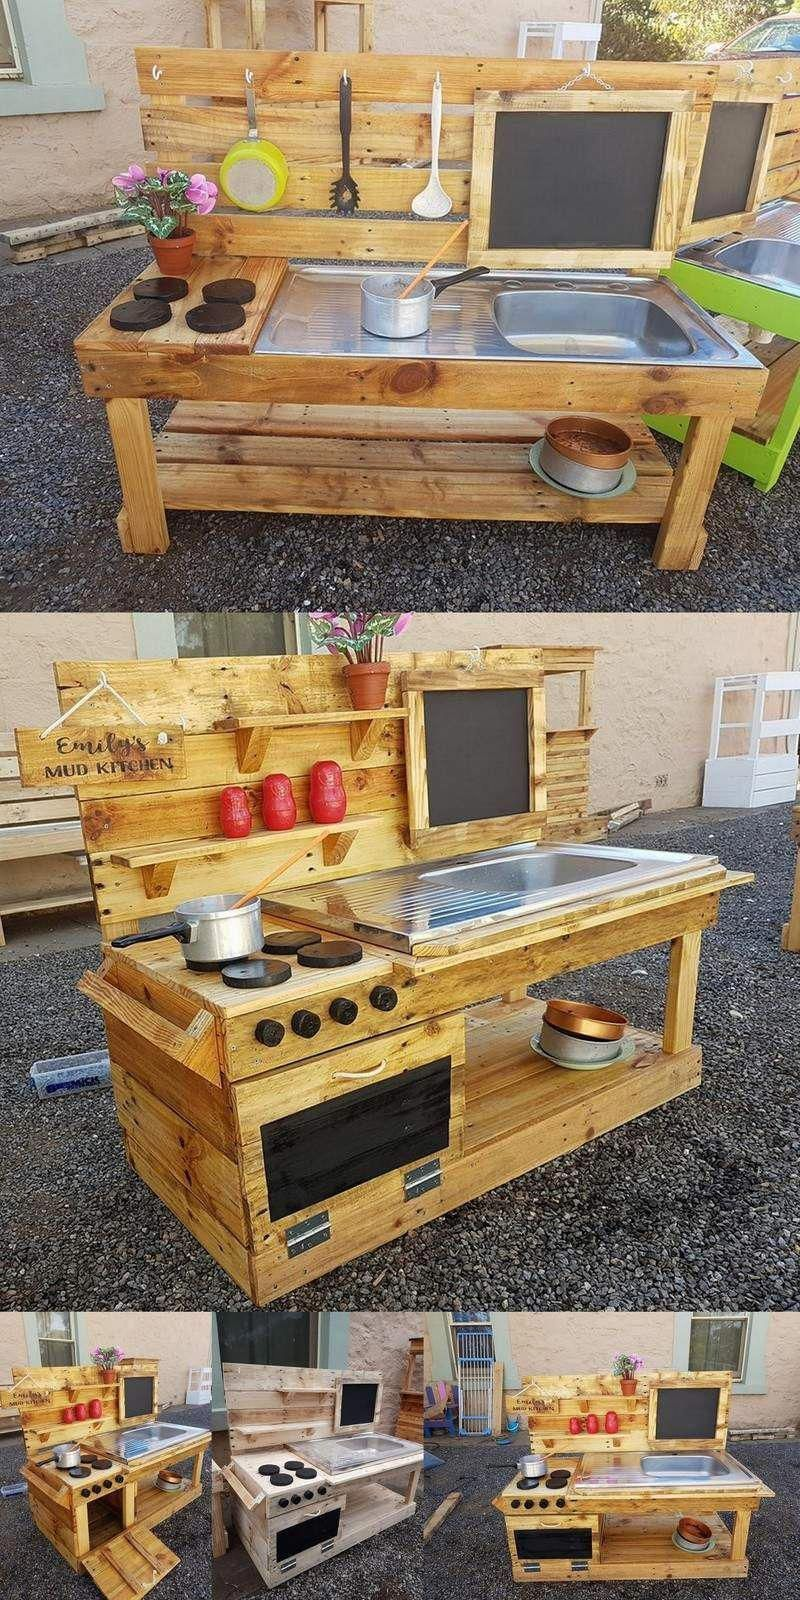 Glory Wood 1037 Courageous Craft Woodworking Tools Woodworkingweekend Woodworkingtoolsforbeginner Outdoor Play Kitchen Mud Kitchen For Kids Diy Kids Kitchen